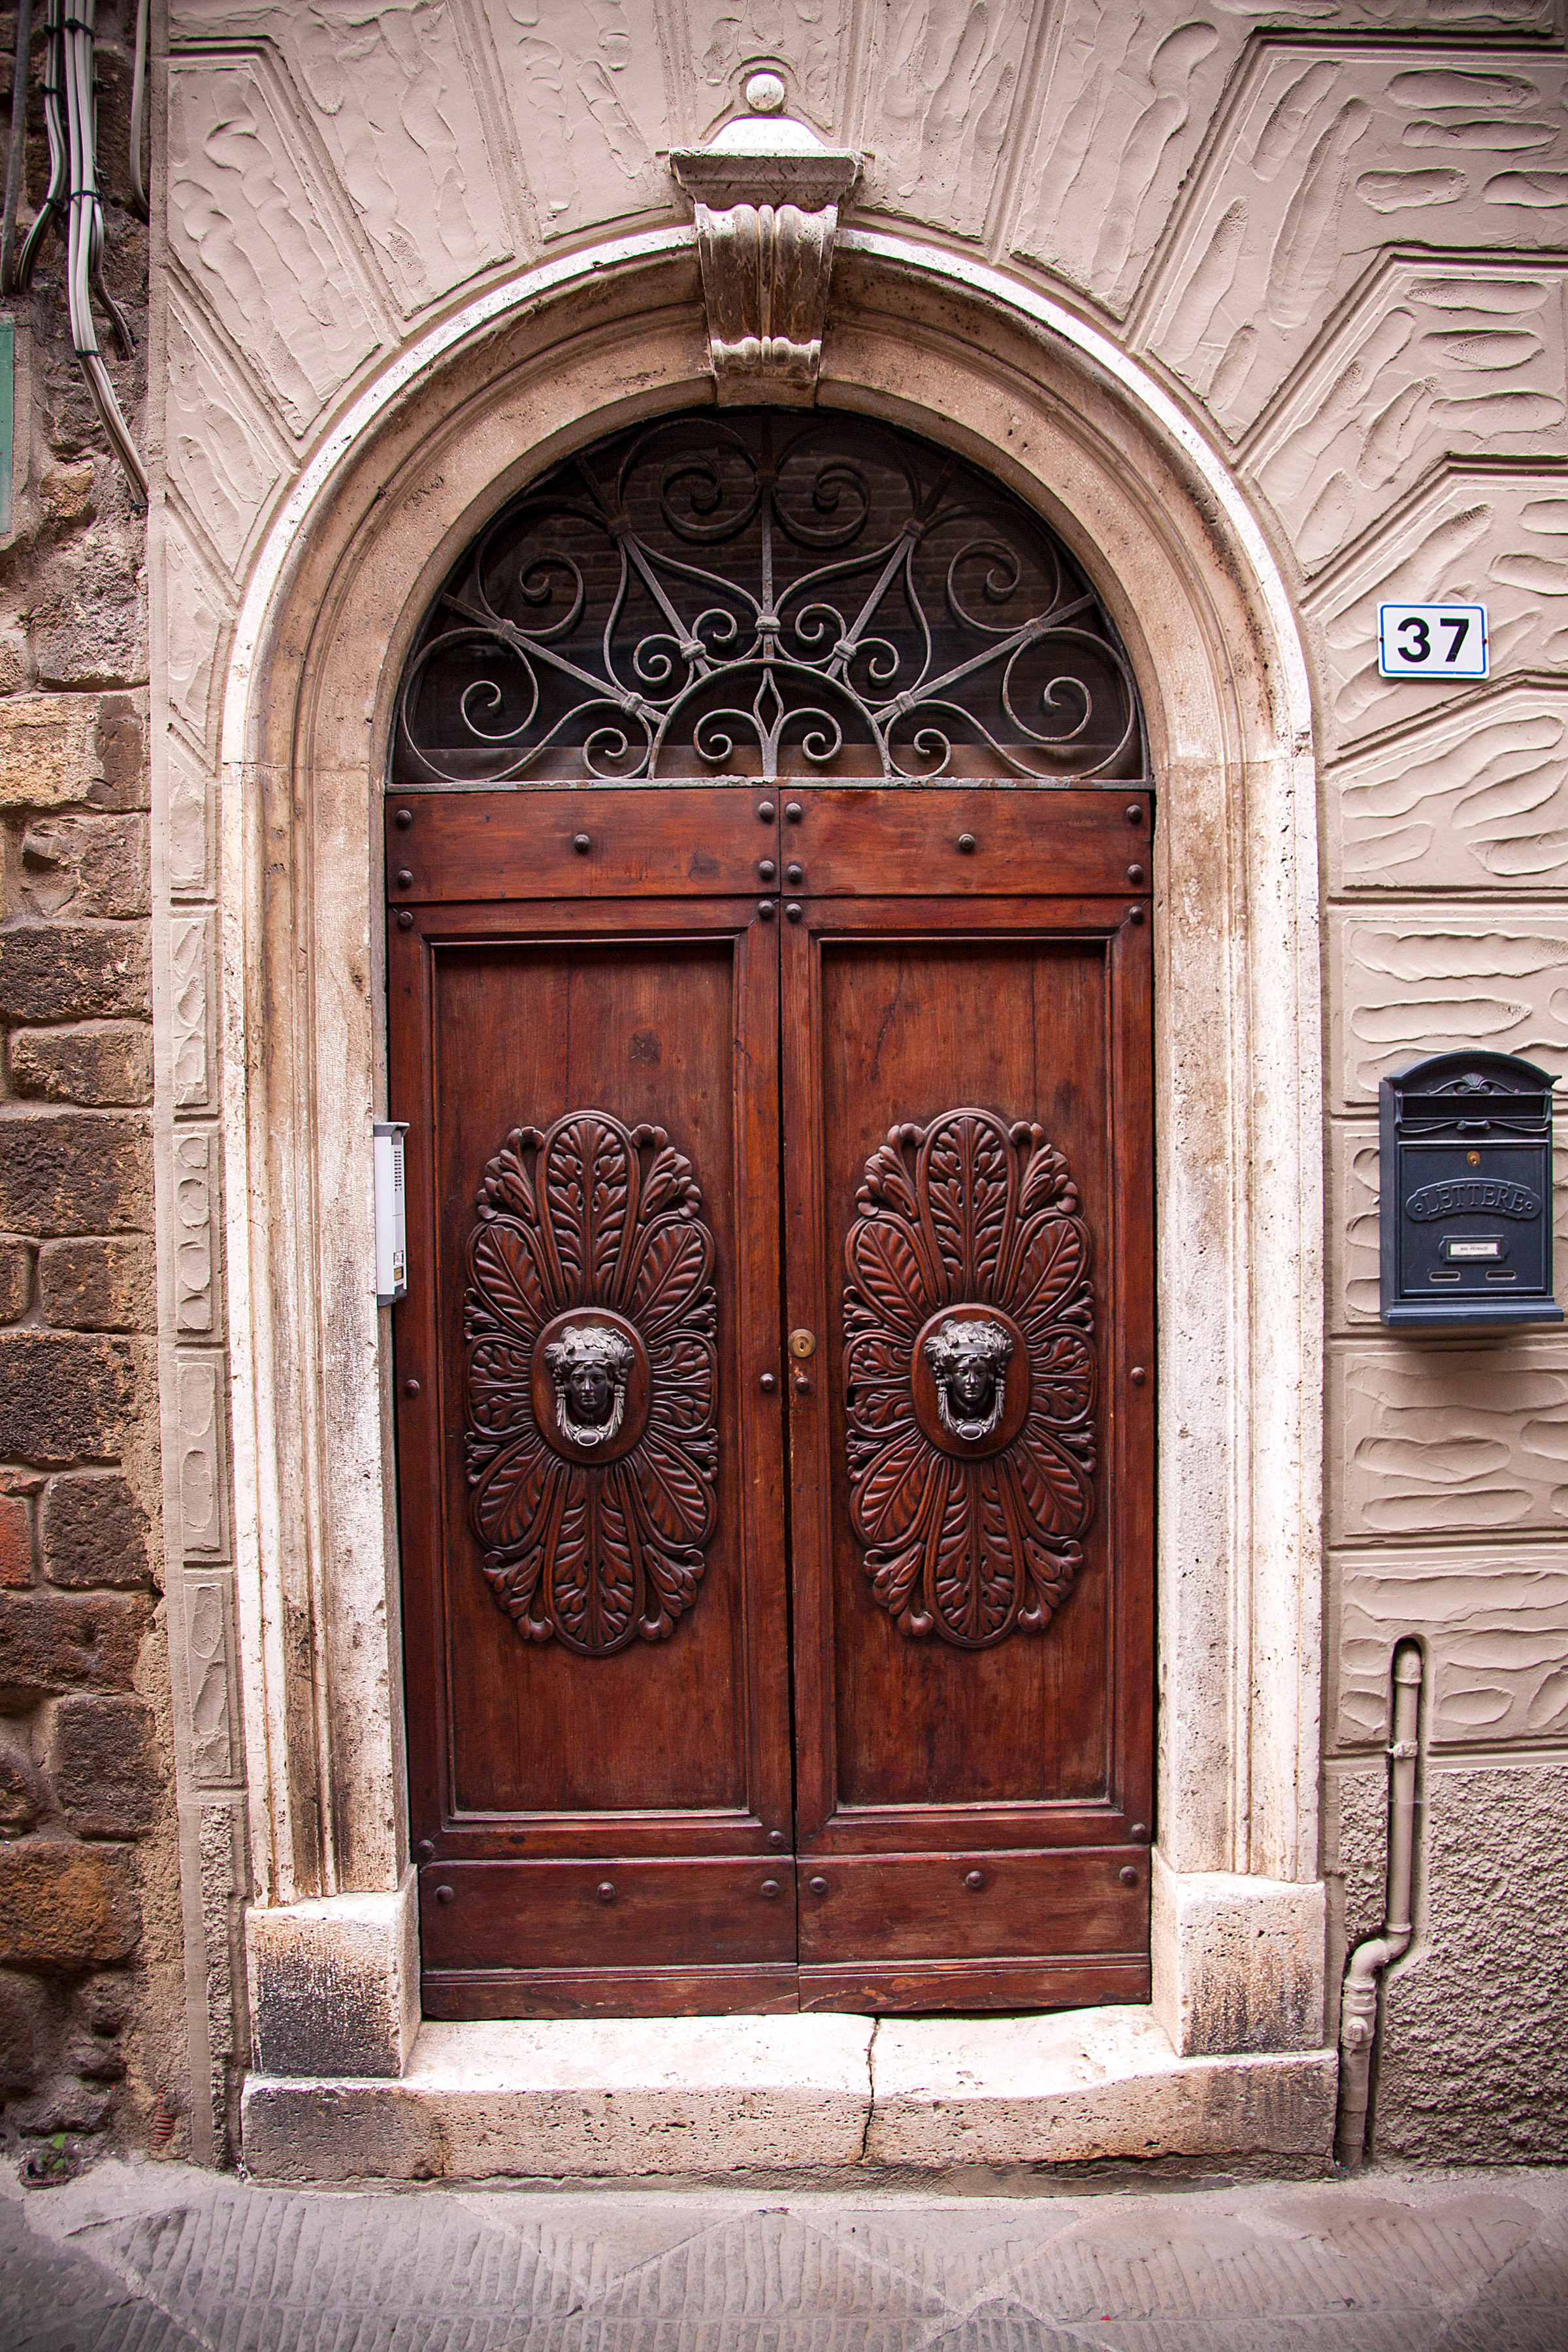 One of Montalcino's beautiful wood carved doors